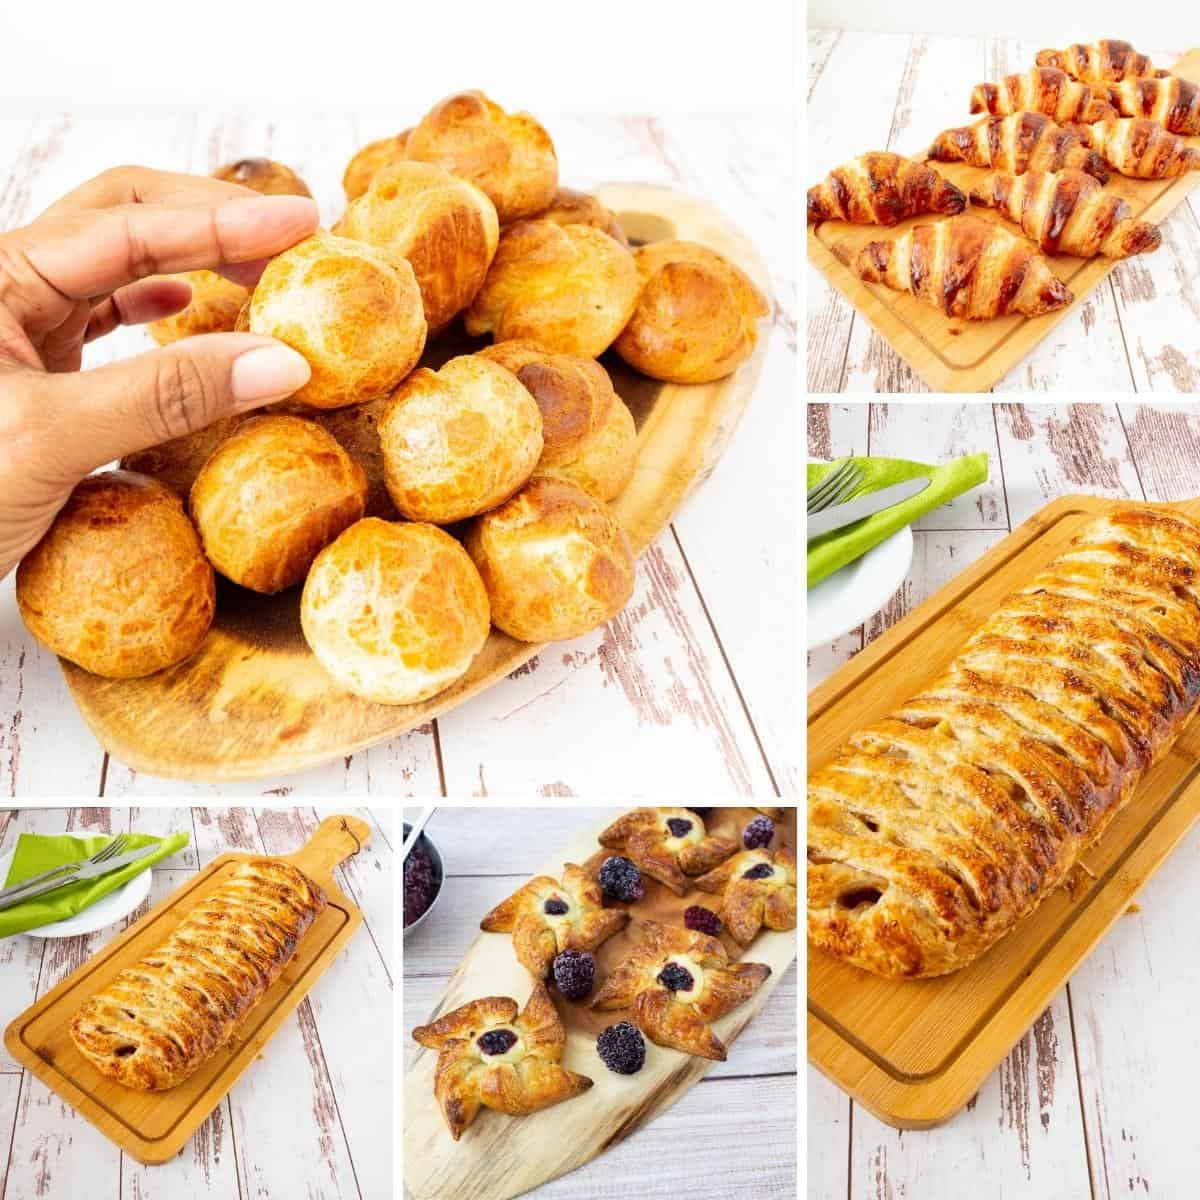 A collage of pastries for baking